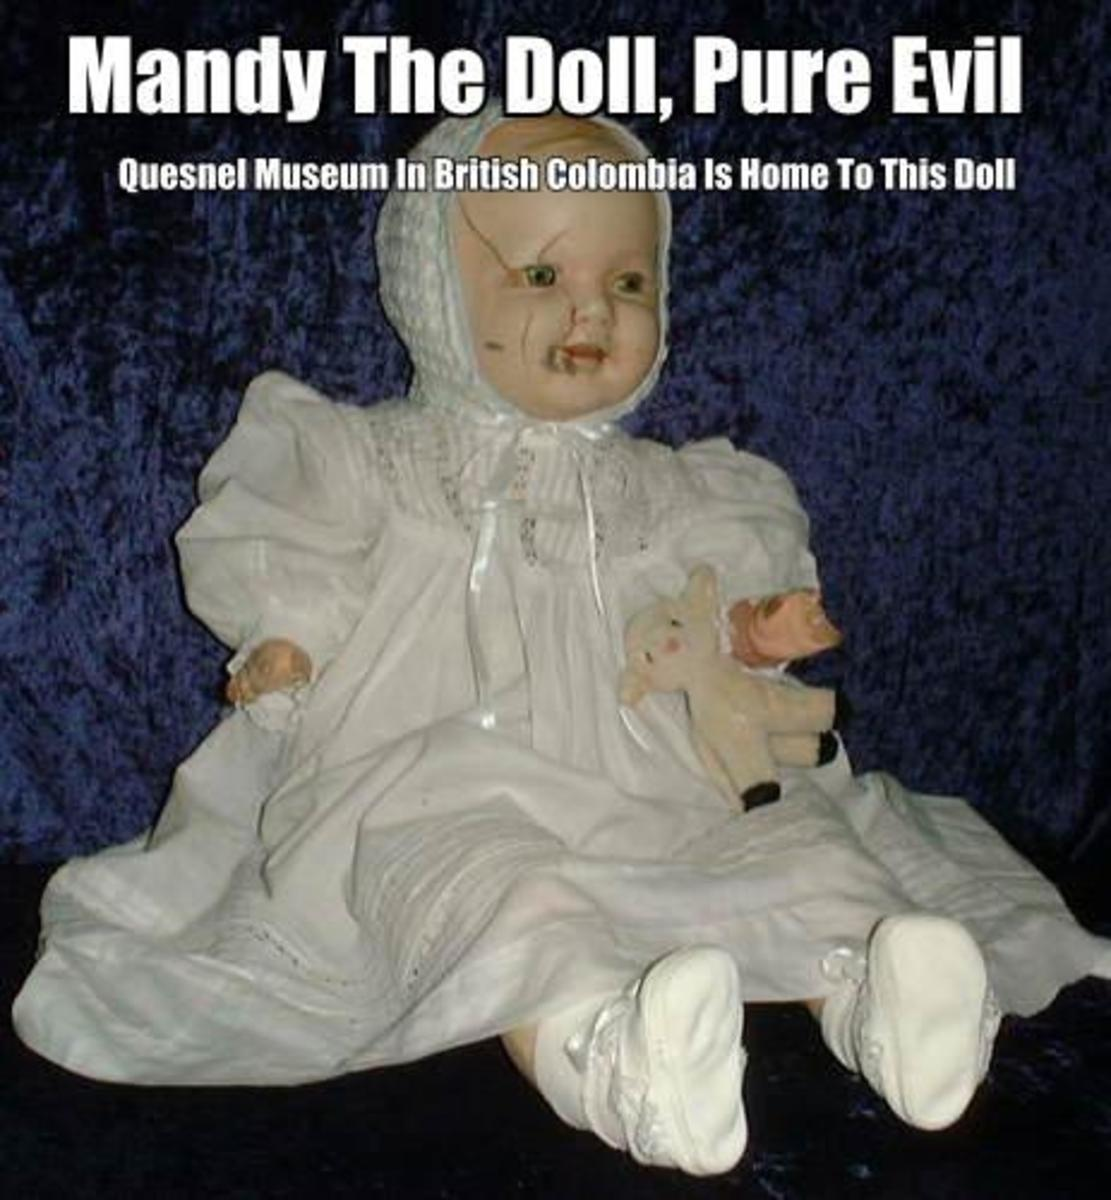 In the photo is Mandy the possessed doll now in the Quesnel Museum in British Colombia , Canada. Here is one of the spookiest dolls you will ever see. An evil spirit is believed to dwell in this doll.